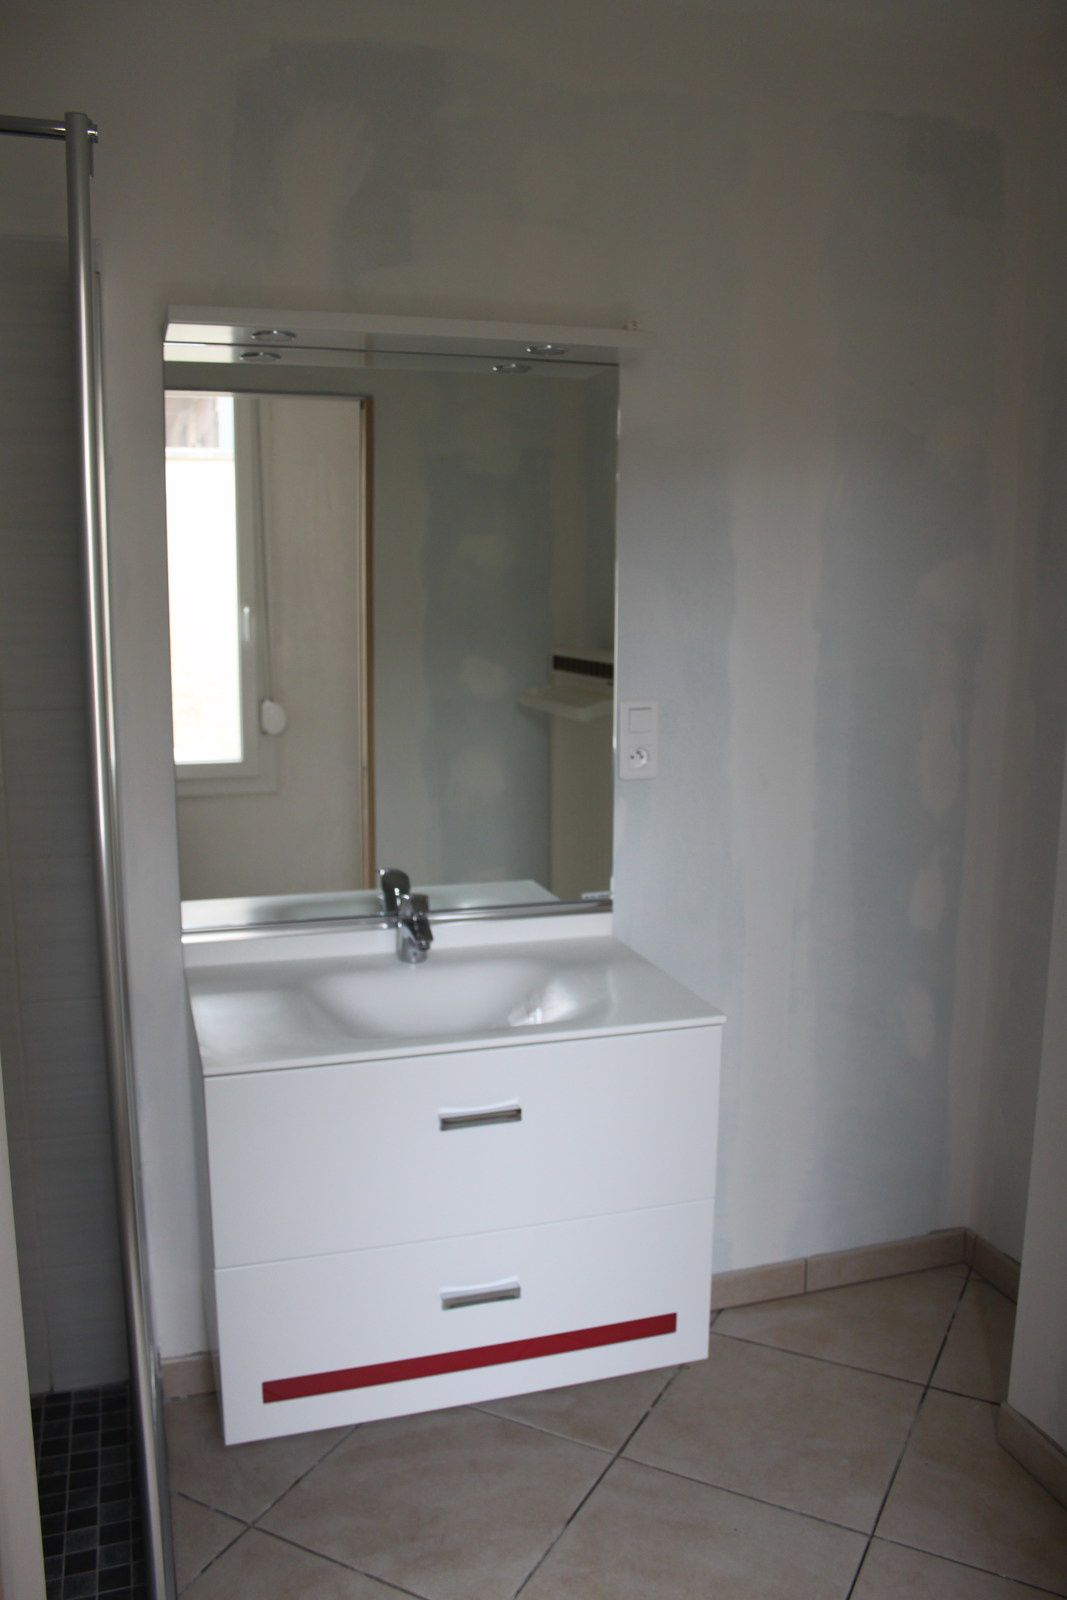 Salle de bain artisan en r novation d 39 int rieur for Artisan renovation salle de bain